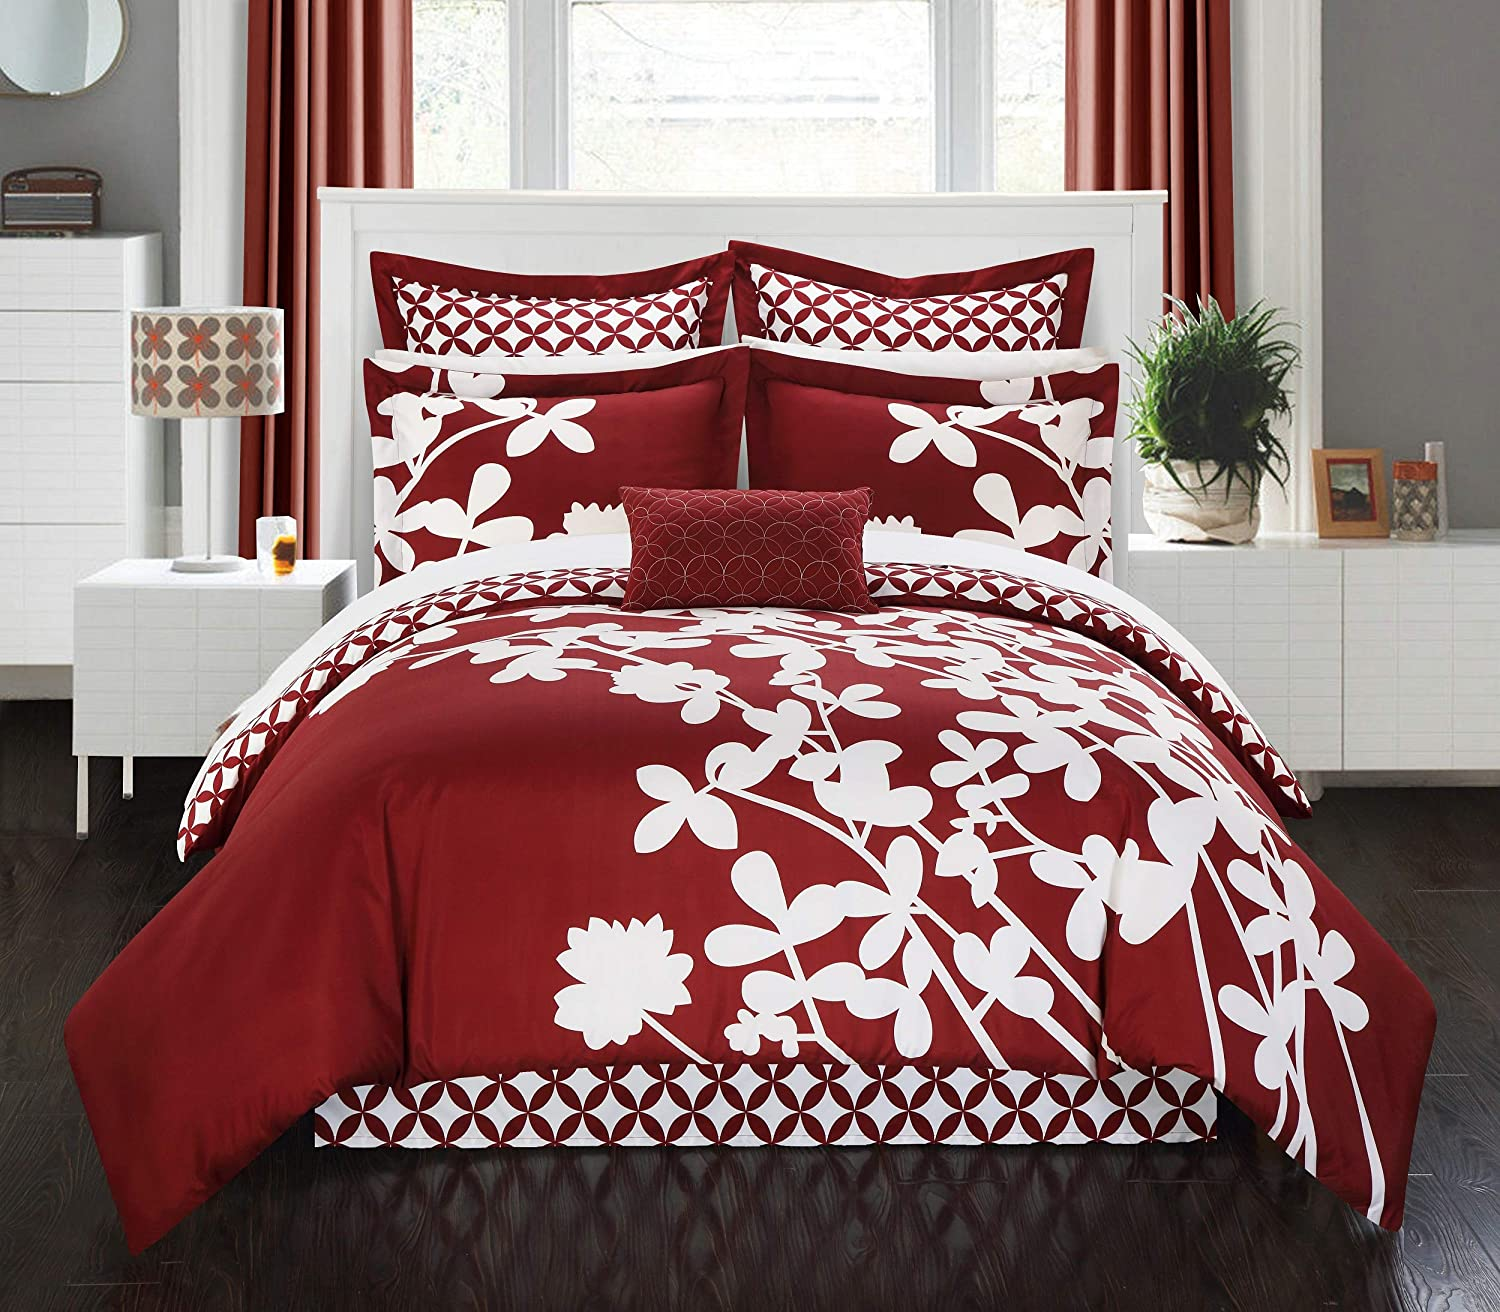 Chic Home 7 Piece Iris Reversible Large Scale Comforter Set, King, RED